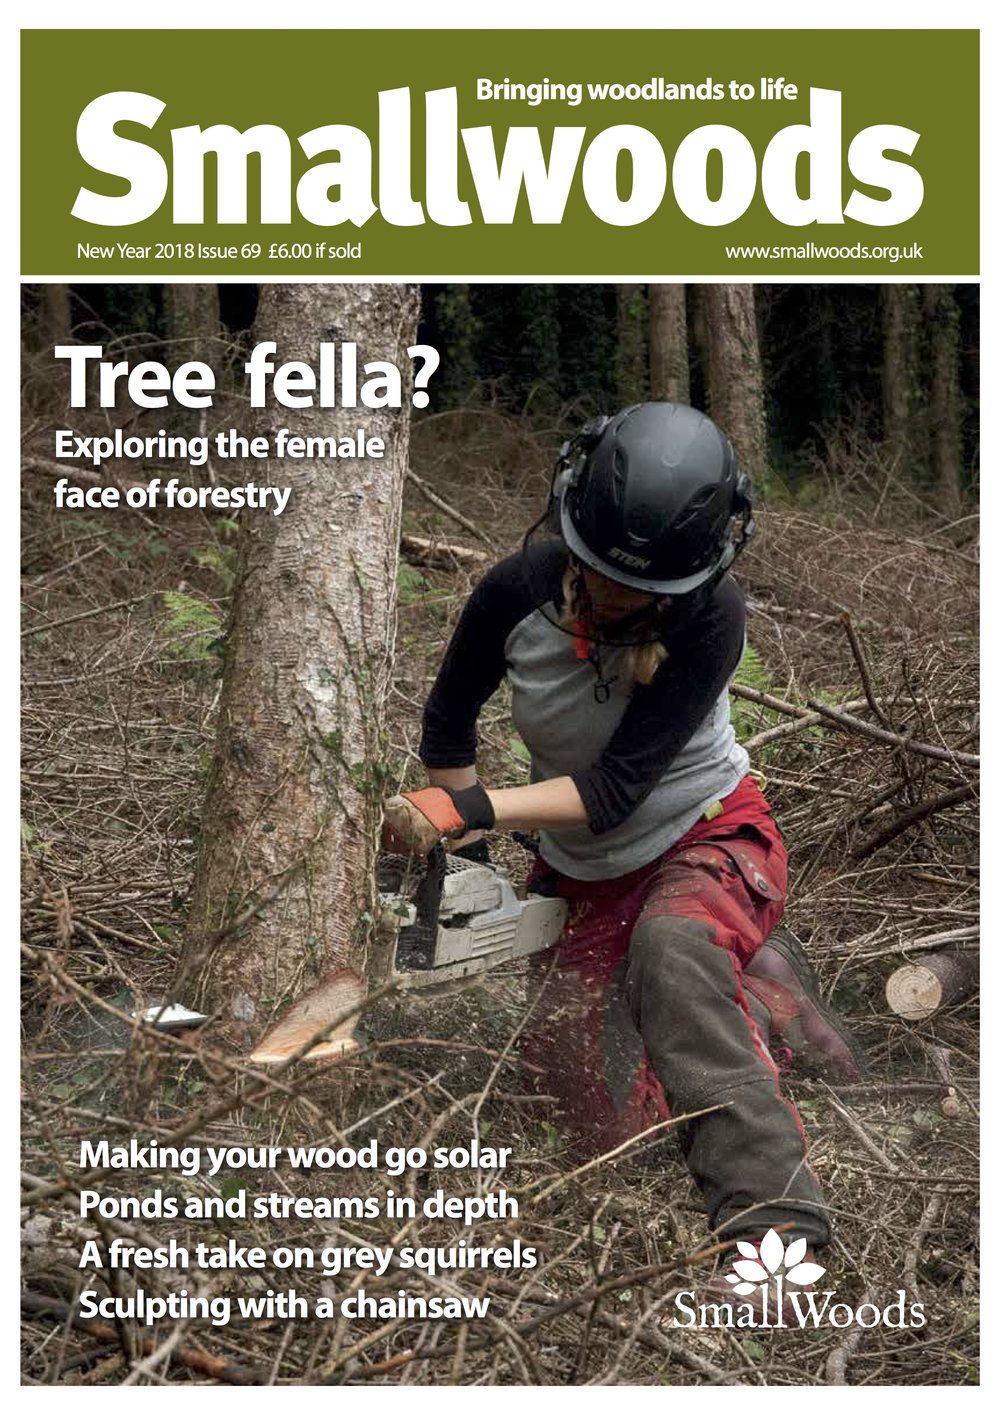 Small Woods Jan 18 cover.jpg